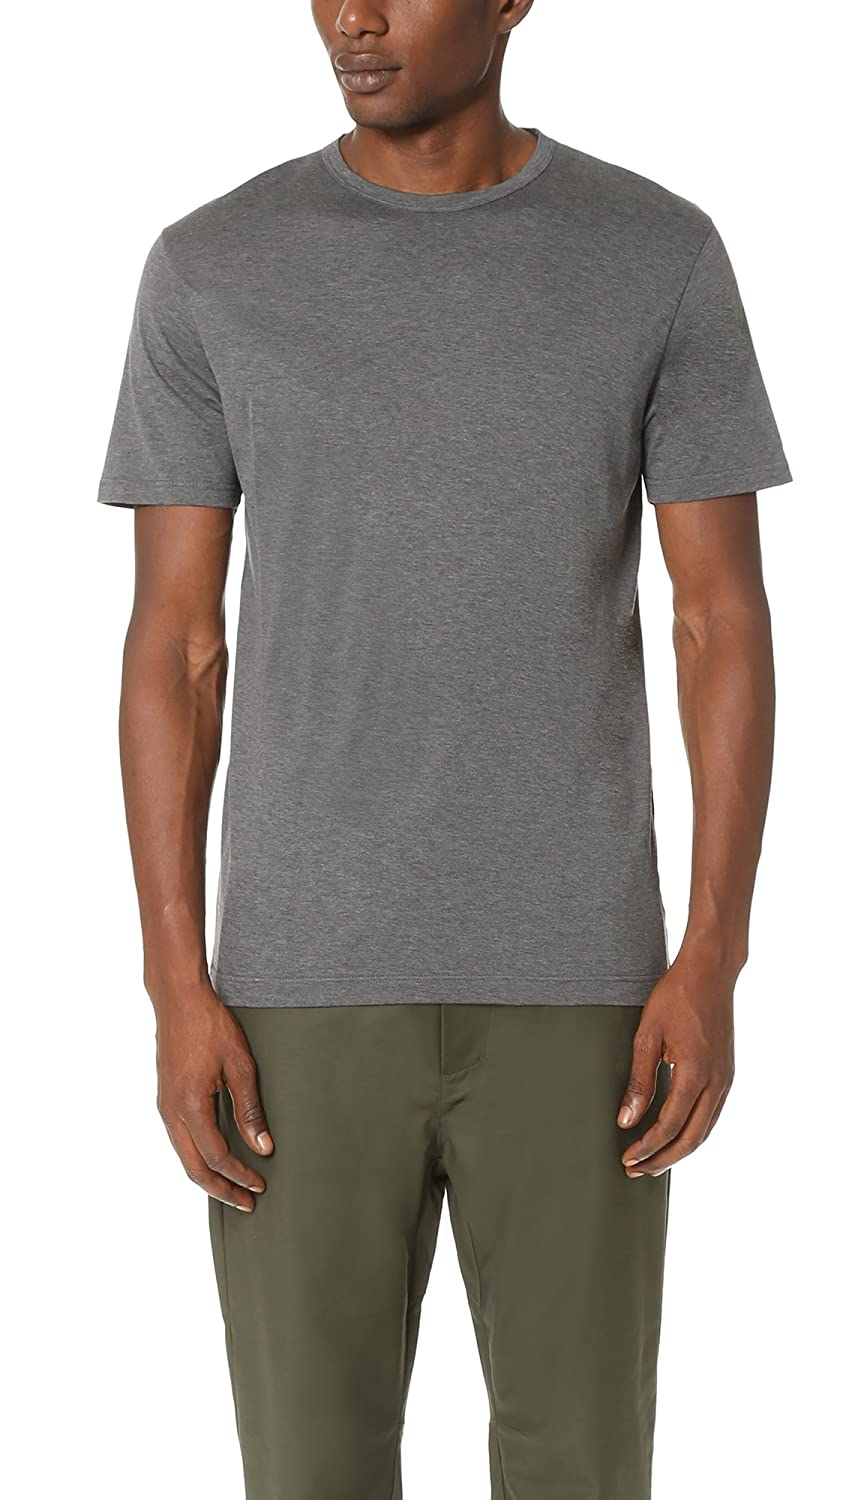 44a54fca215 Sunspel Men s Crew Neck T-Shirt - Charcoal Melange - S  Amazon.co.uk   Clothing